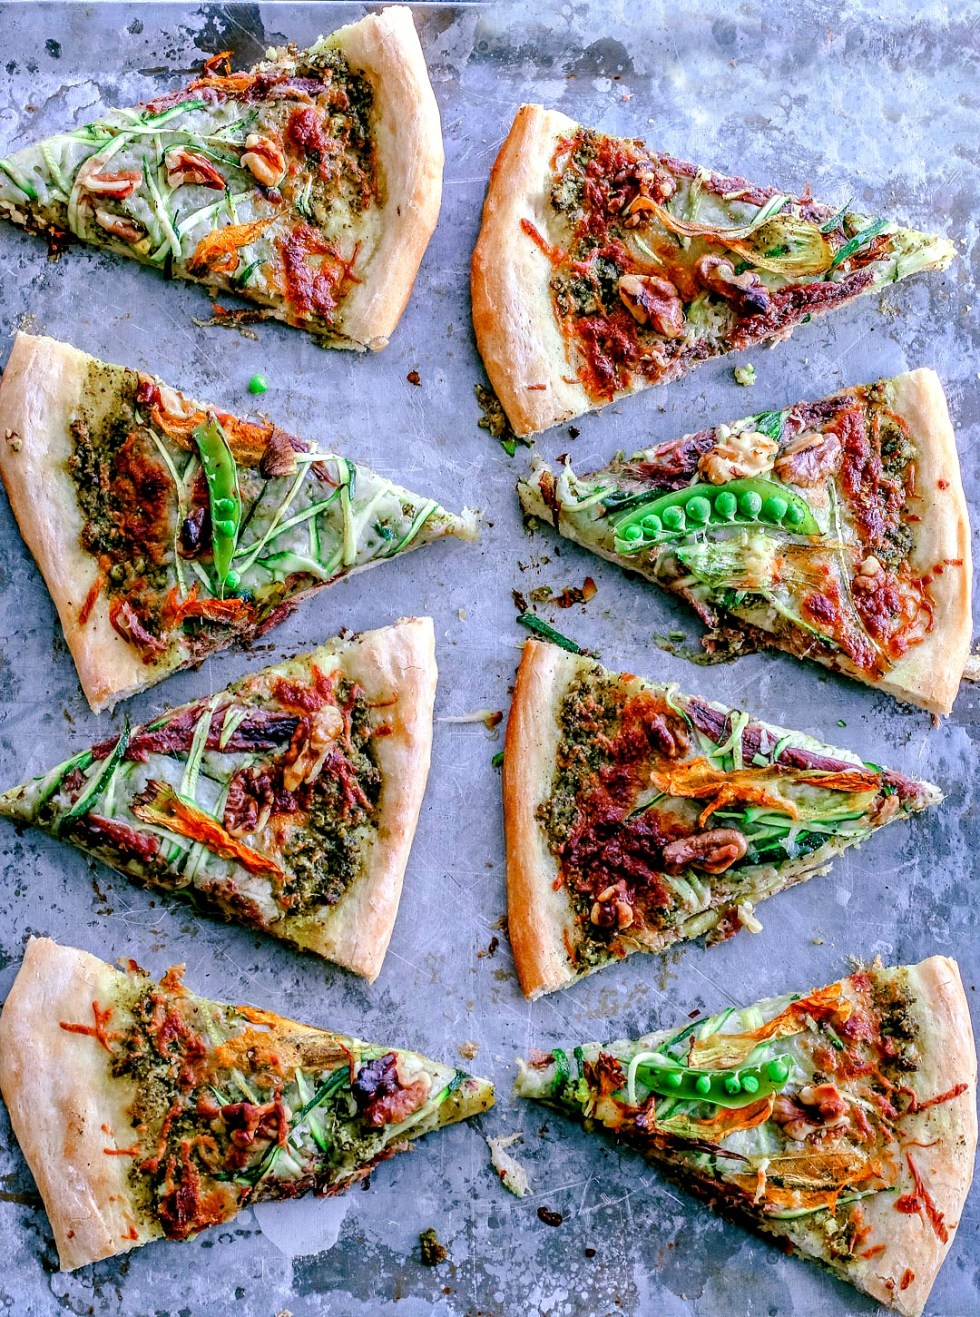 Summer Zucchini and Pesto Pizza With Squash Blossoms | Killing Thyme